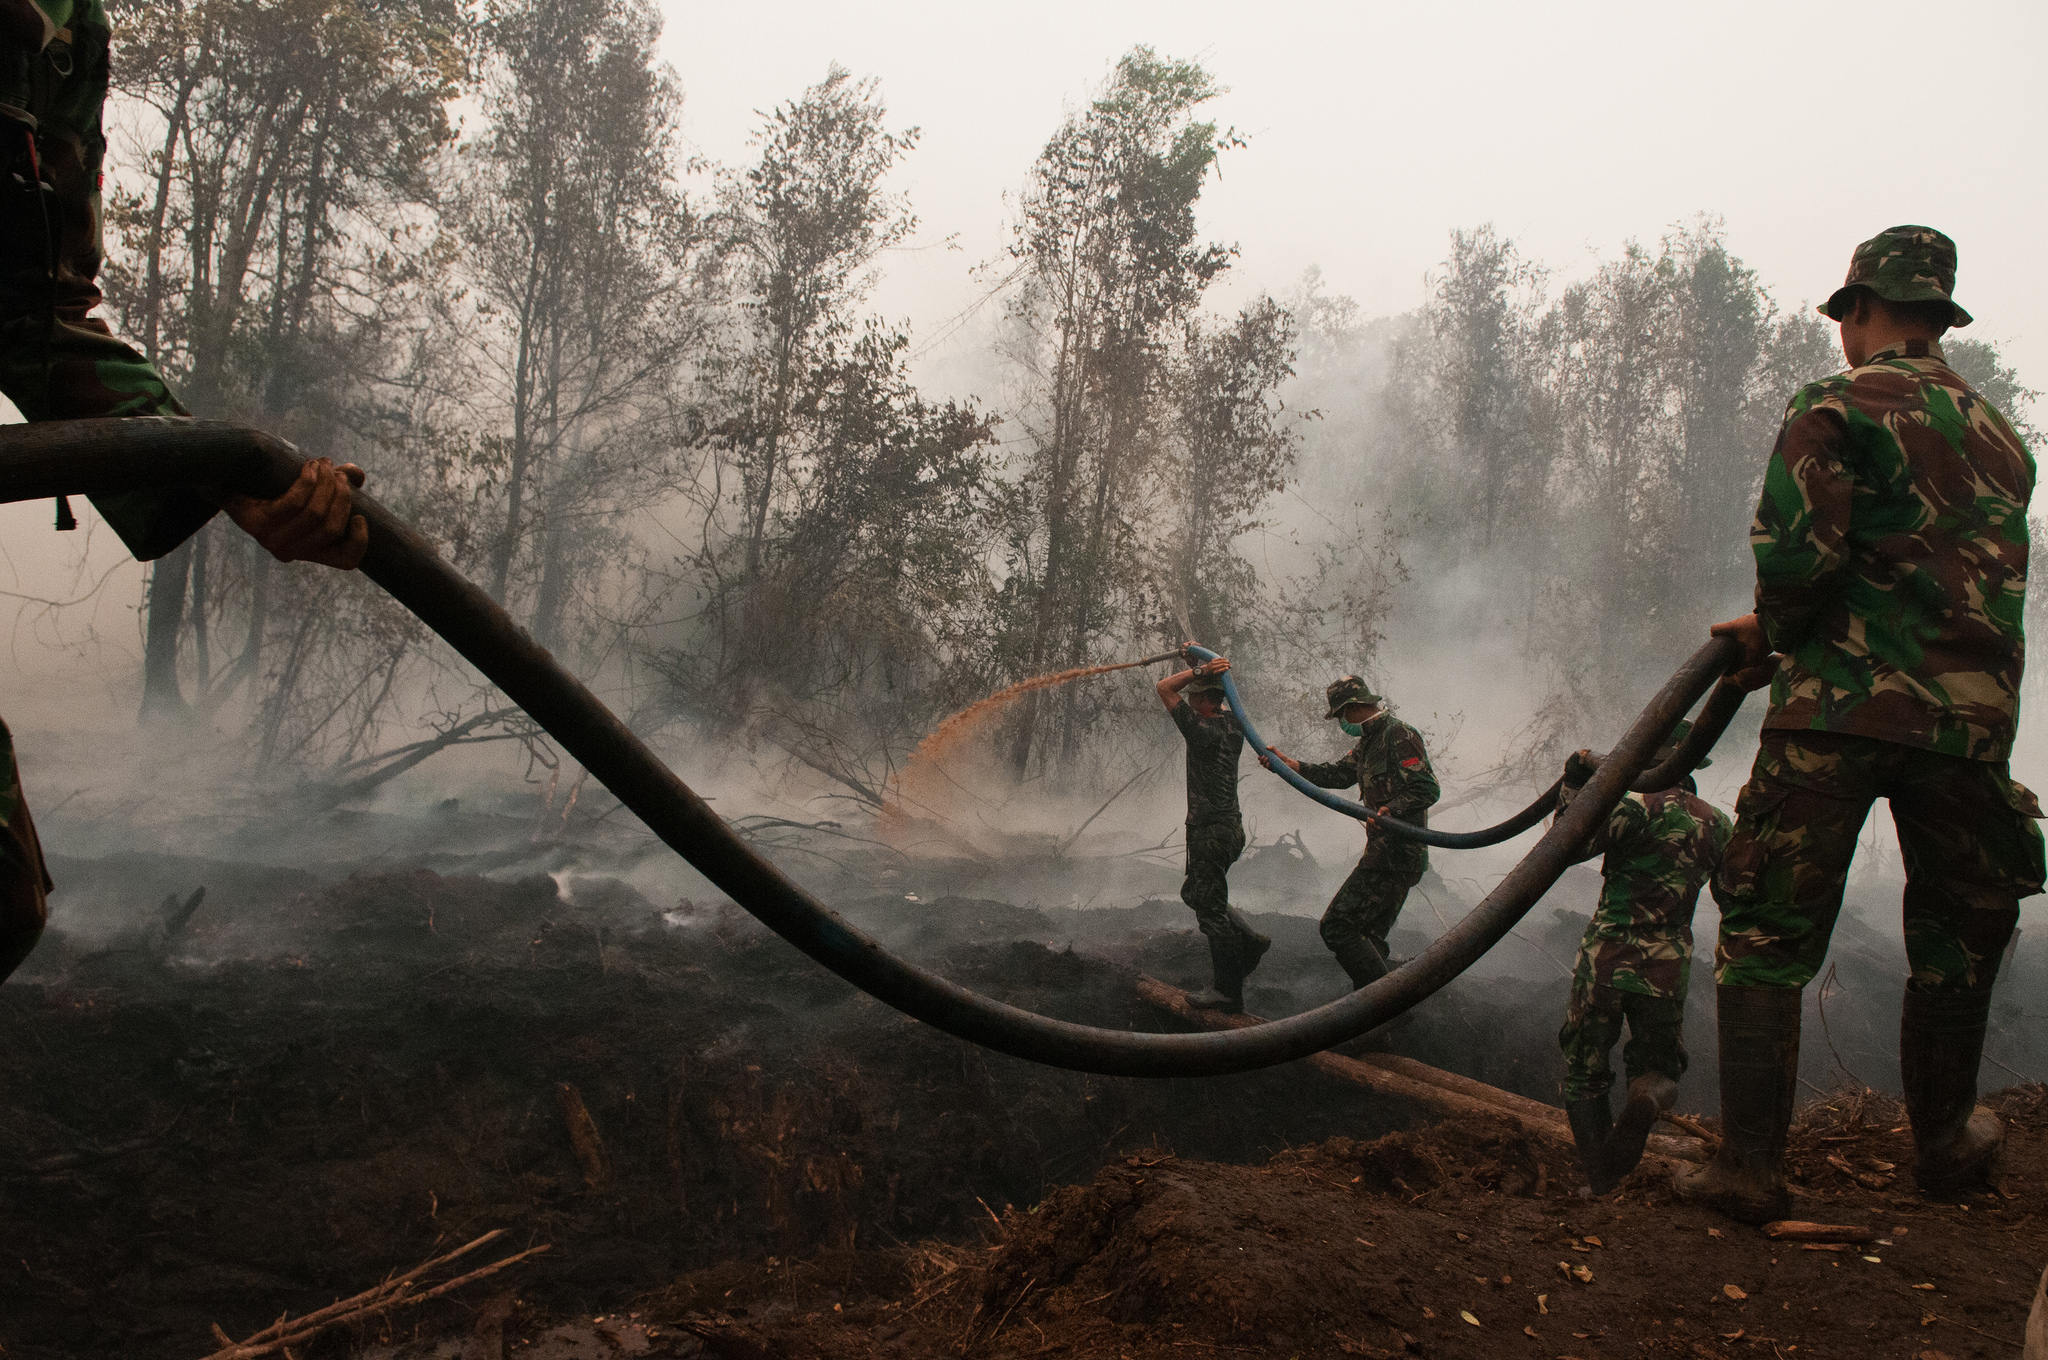 Fighting fire and haze in Indonesia